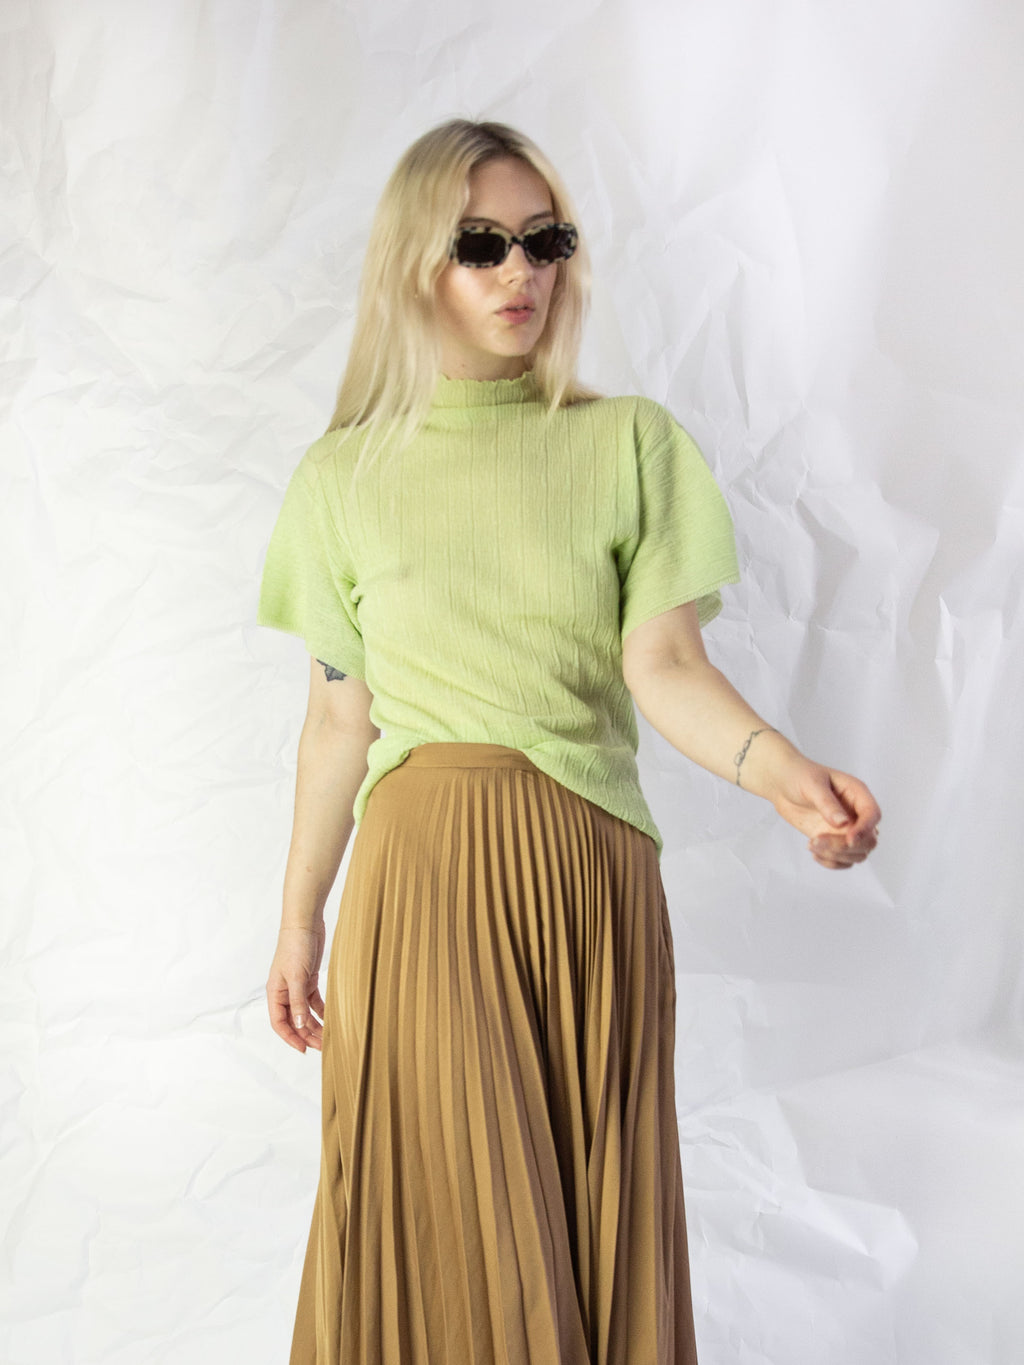 Vent Textured Top - Pale Green